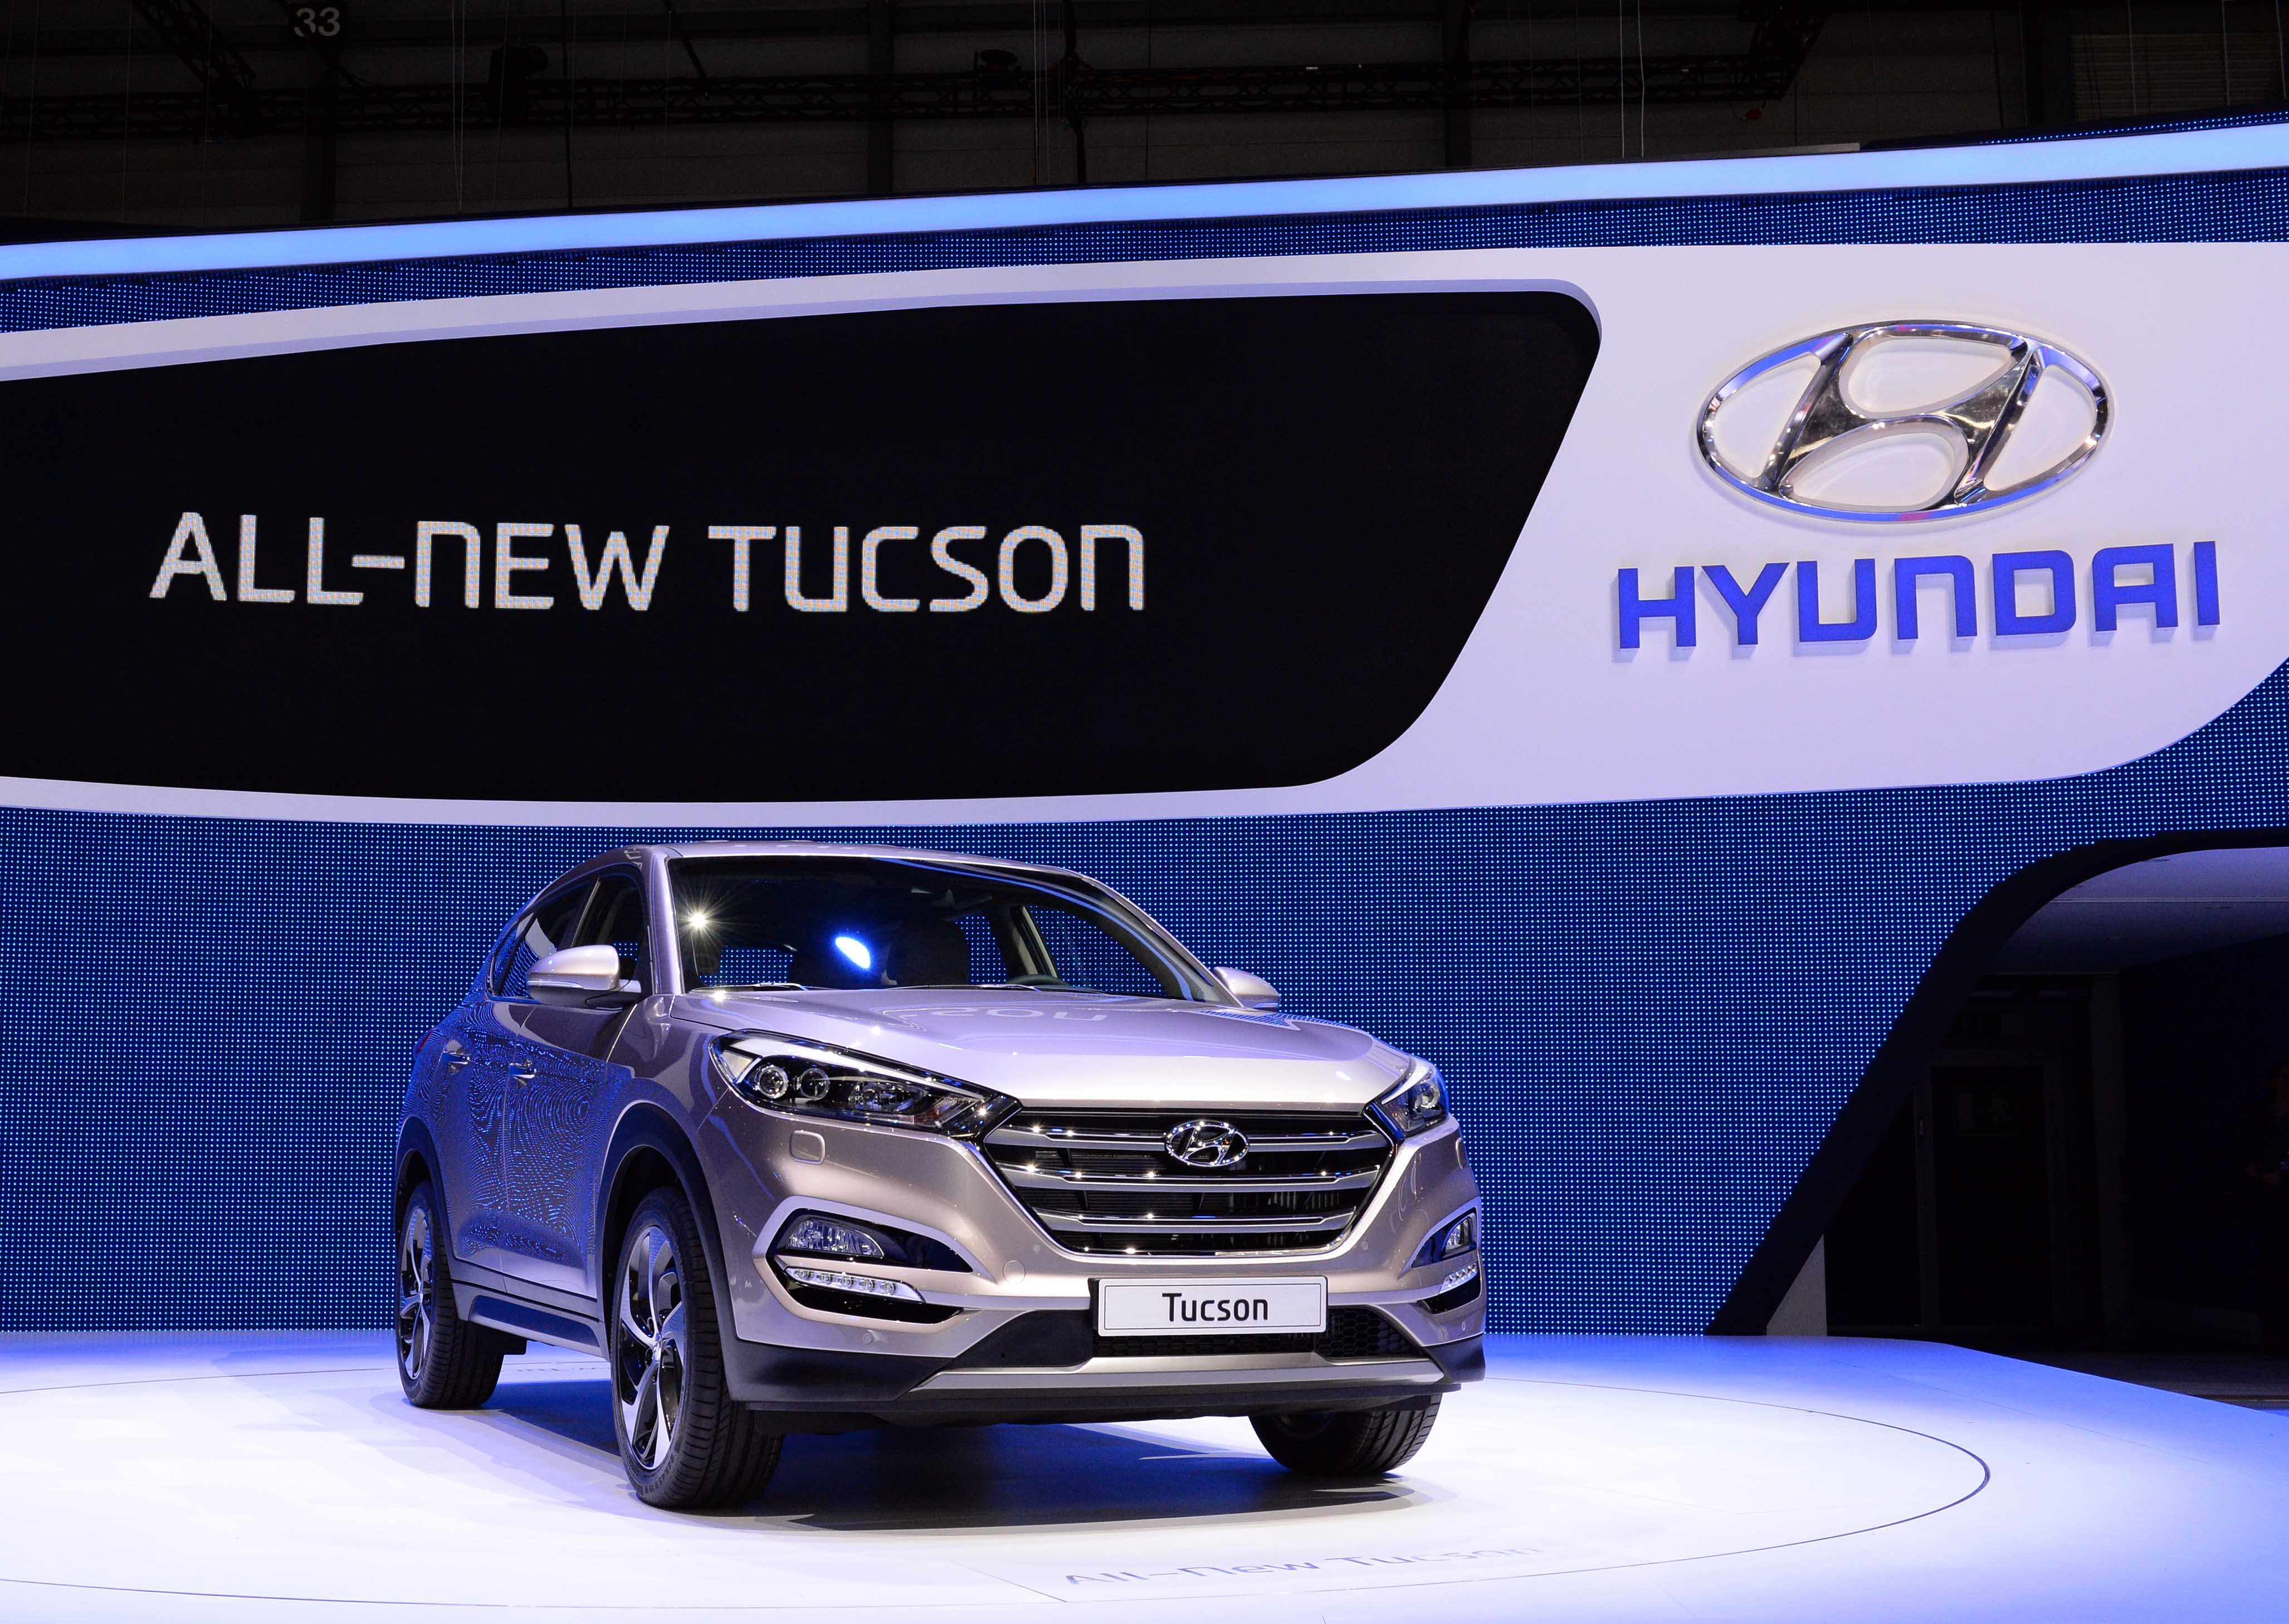 Hyundai Motor Line Up At 2015 Geneva Motor Show The